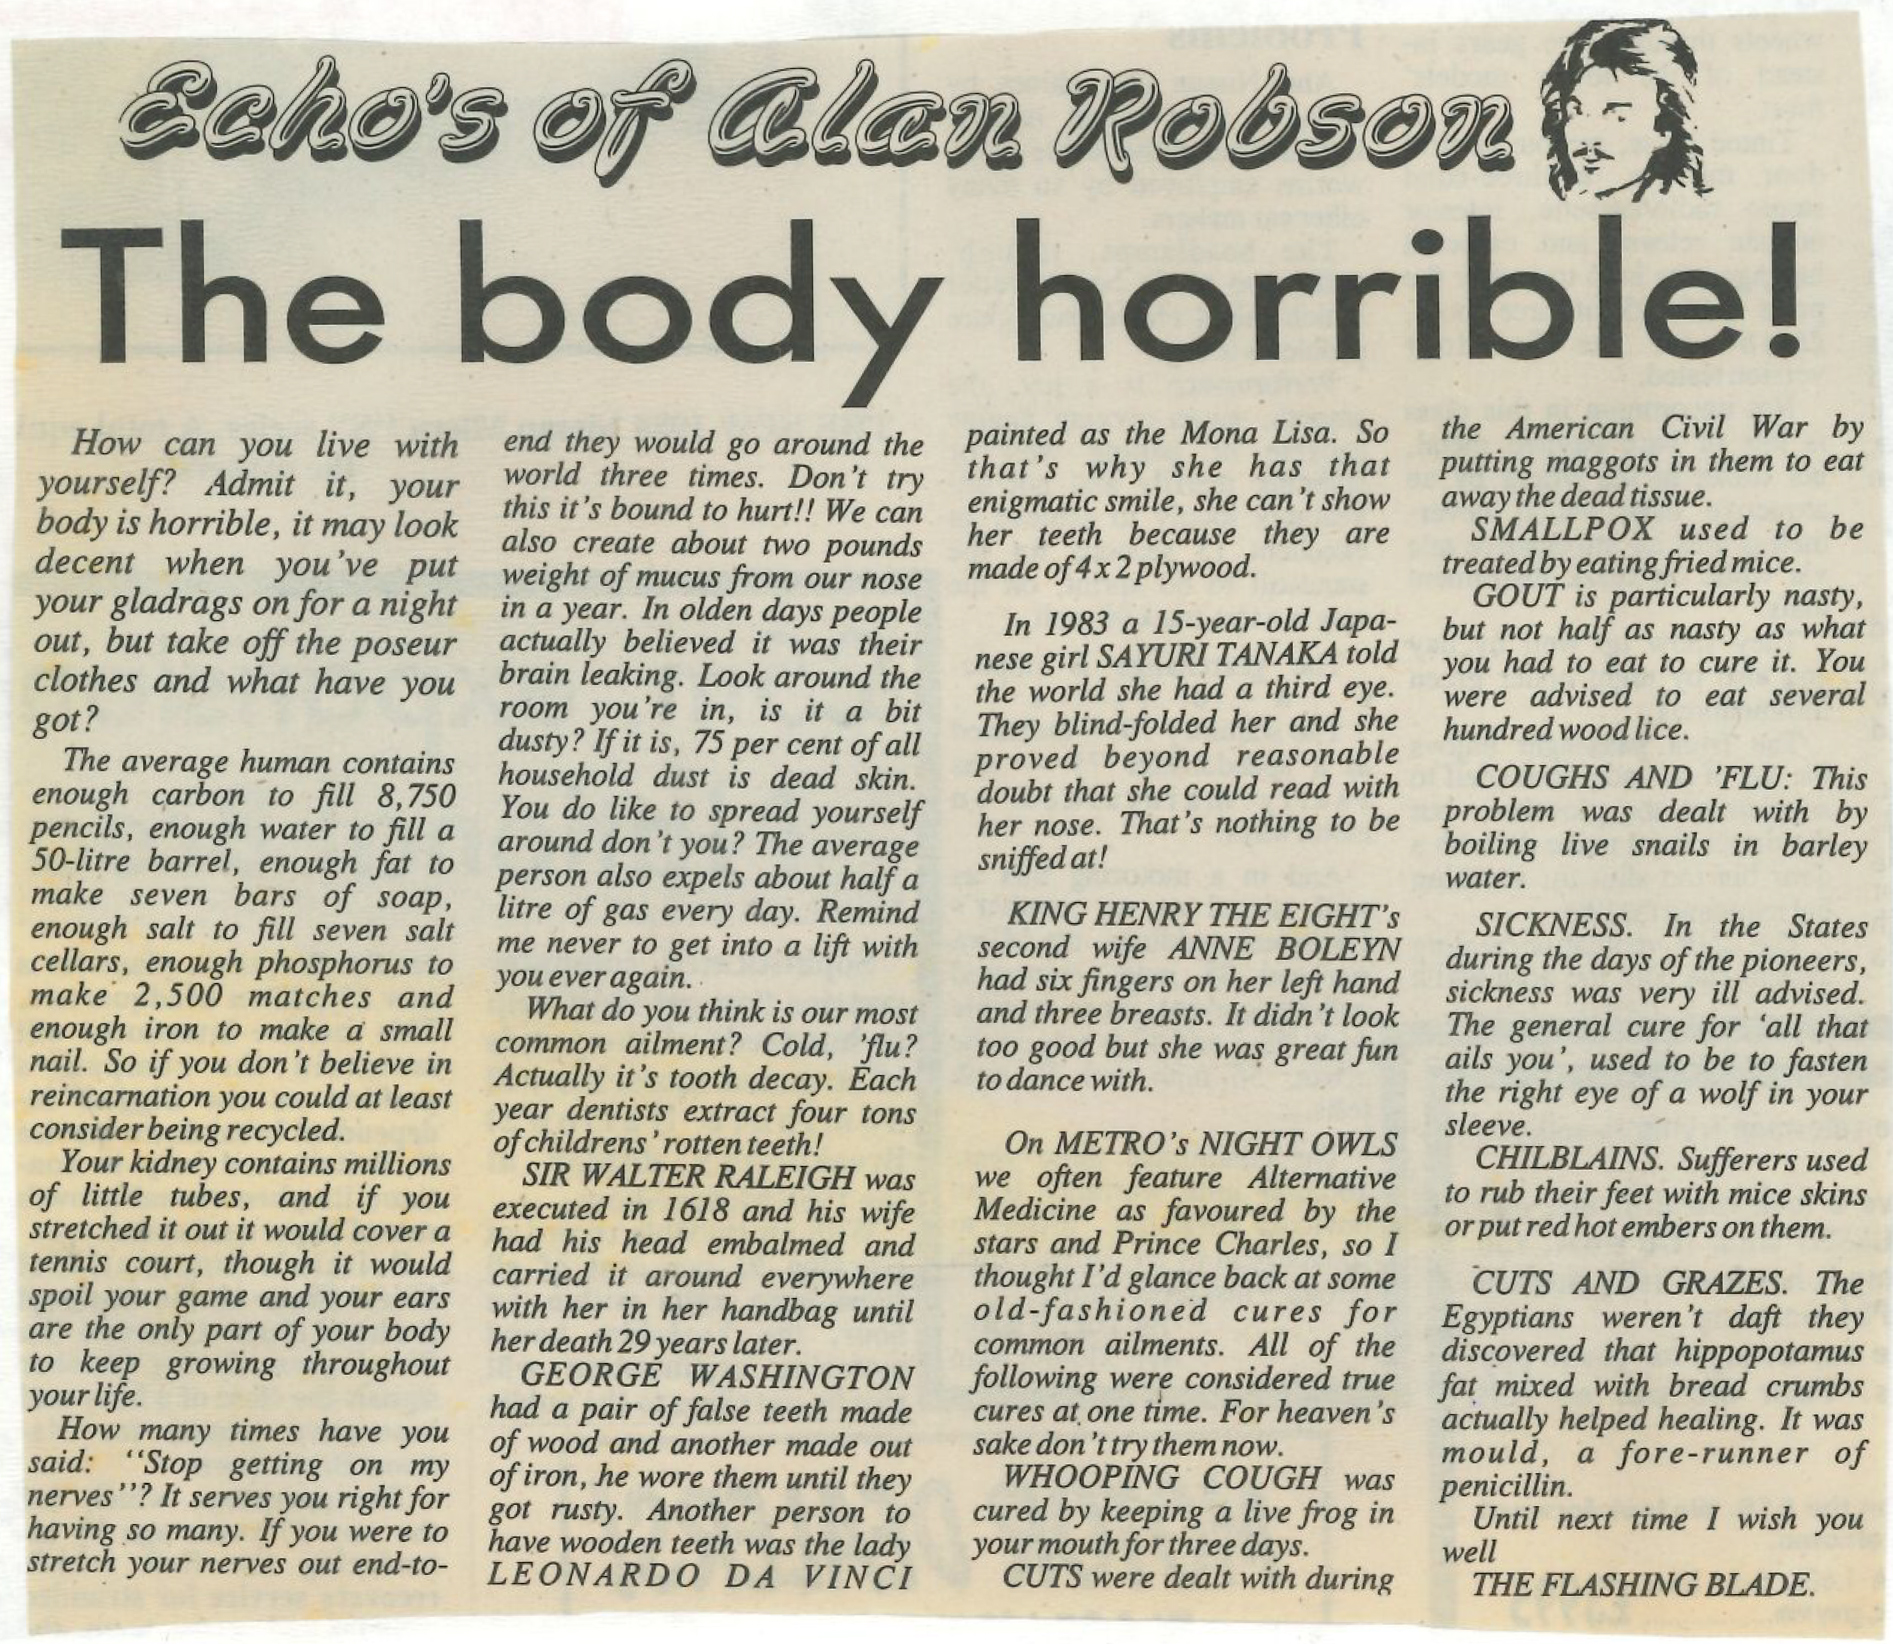 *Article* The Body Is Horrible